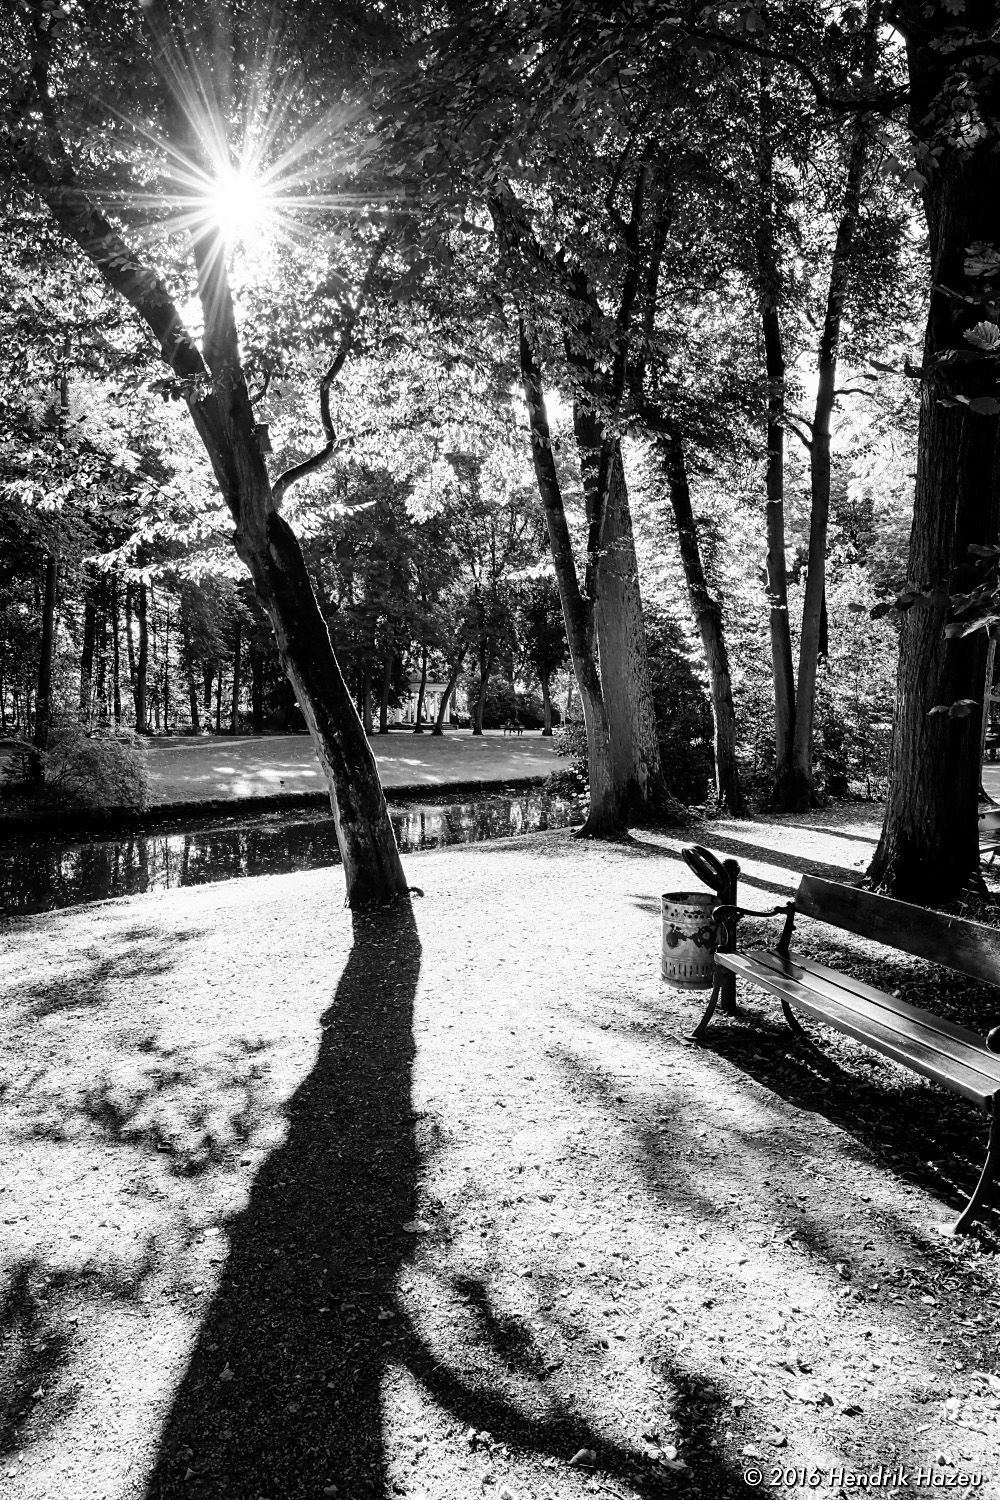 Contre Jour in the Park - Visualized with XF 16 mm f1.4 WR on X-Pro2